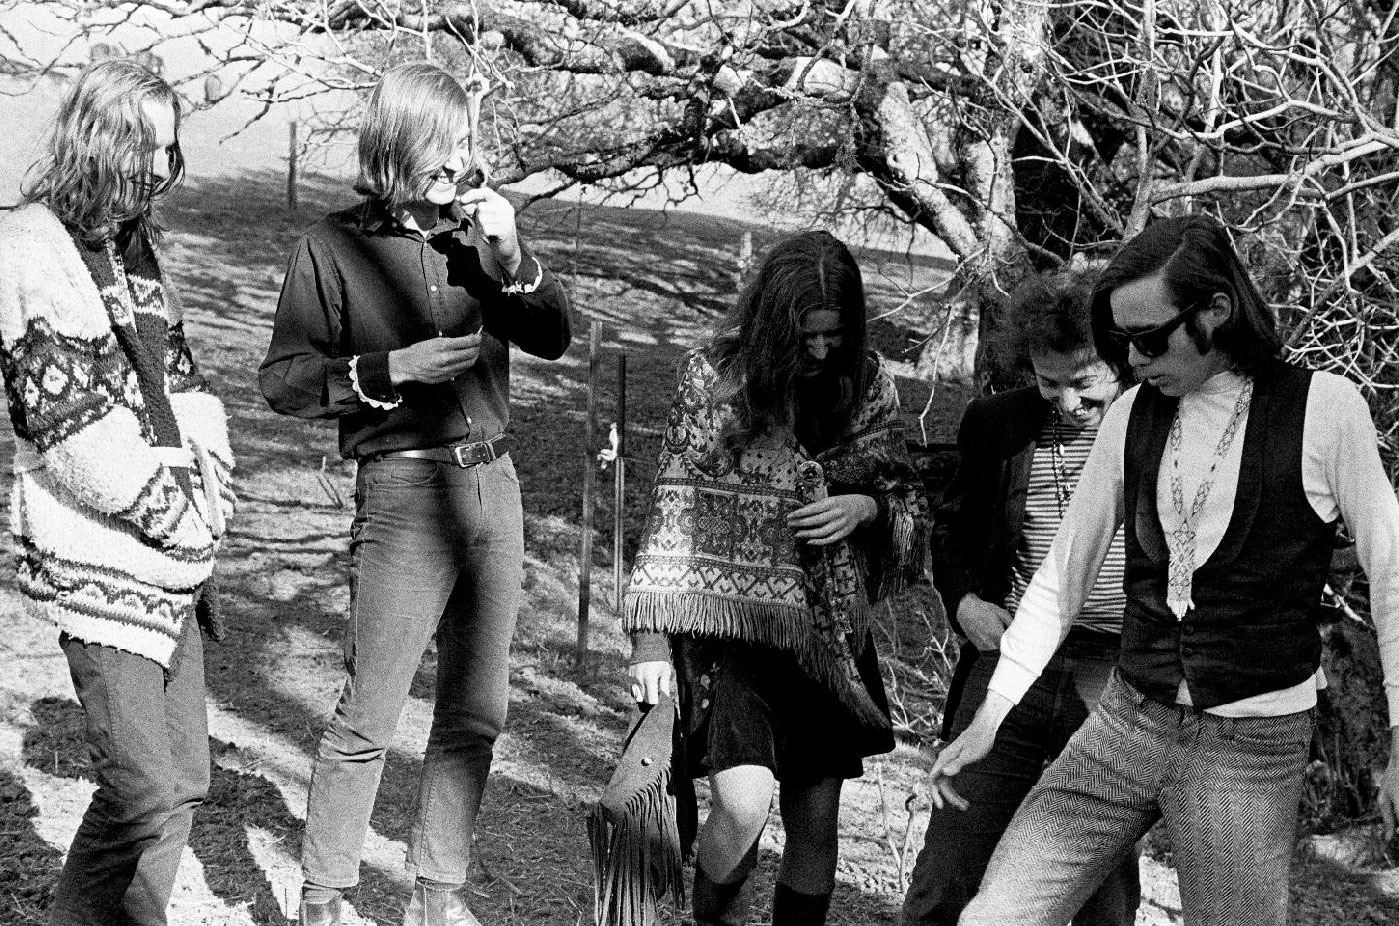 Janis Joplin - Big Brother and the Holding Company 1966-1968 (Janis Joplin, Peter Albin, Sam Andrew, David Getz, James Gurley) | Photo